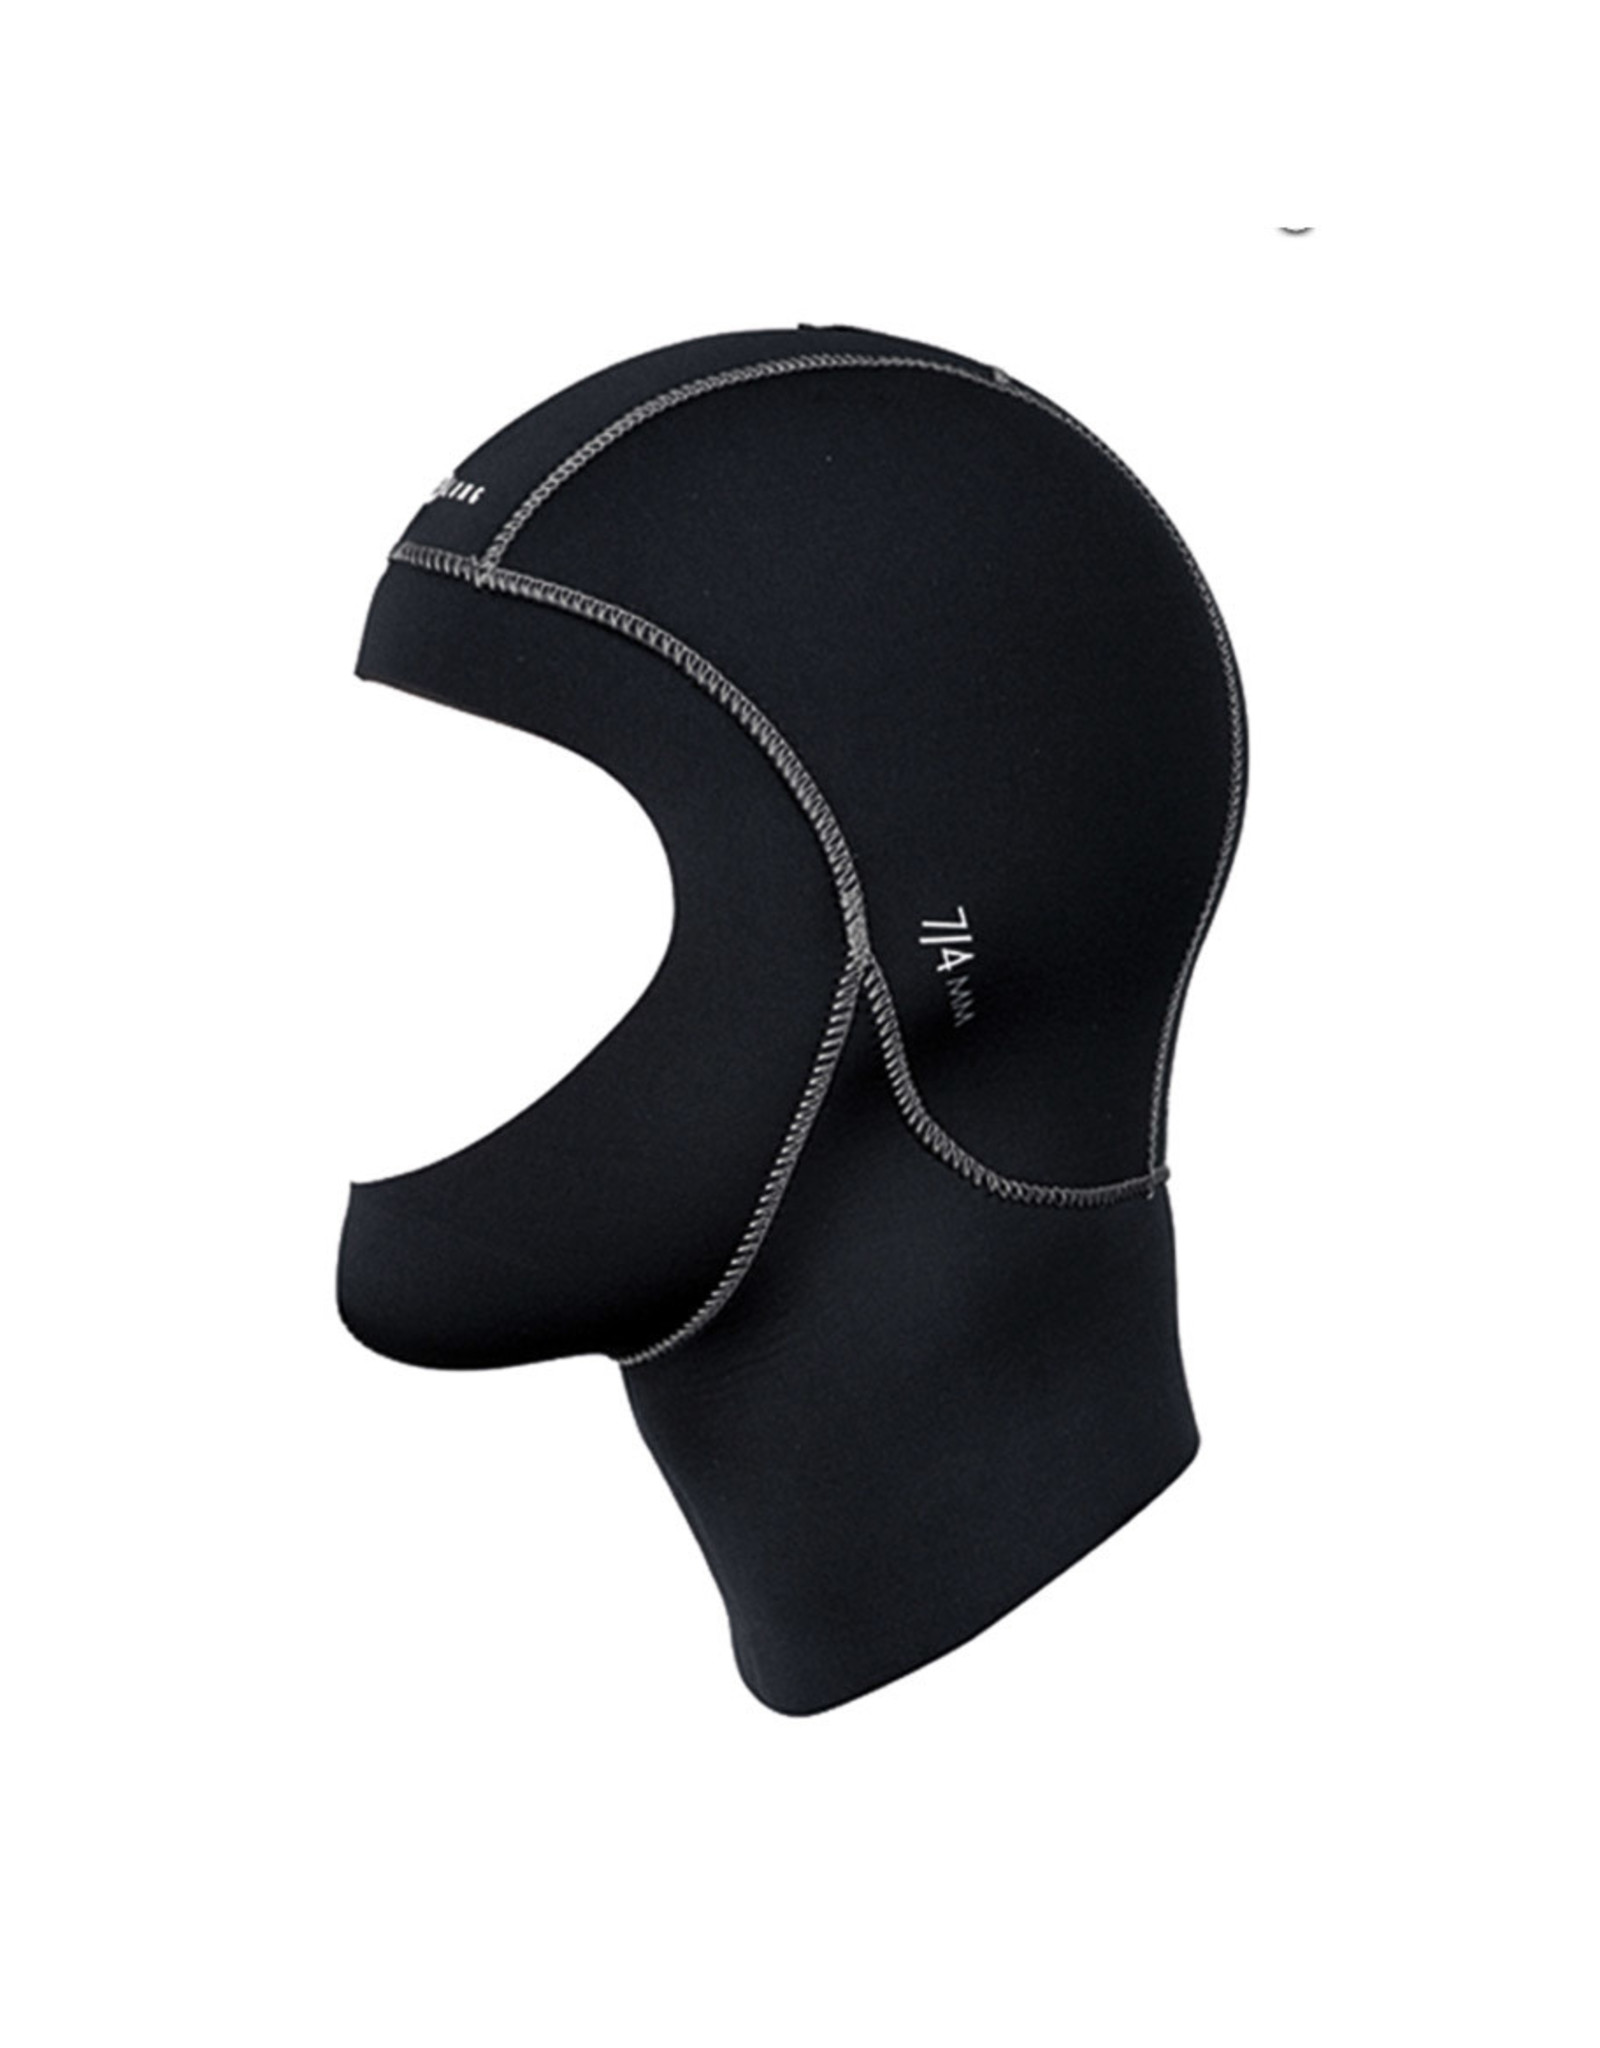 Aqualung Dryhood 7/4mm